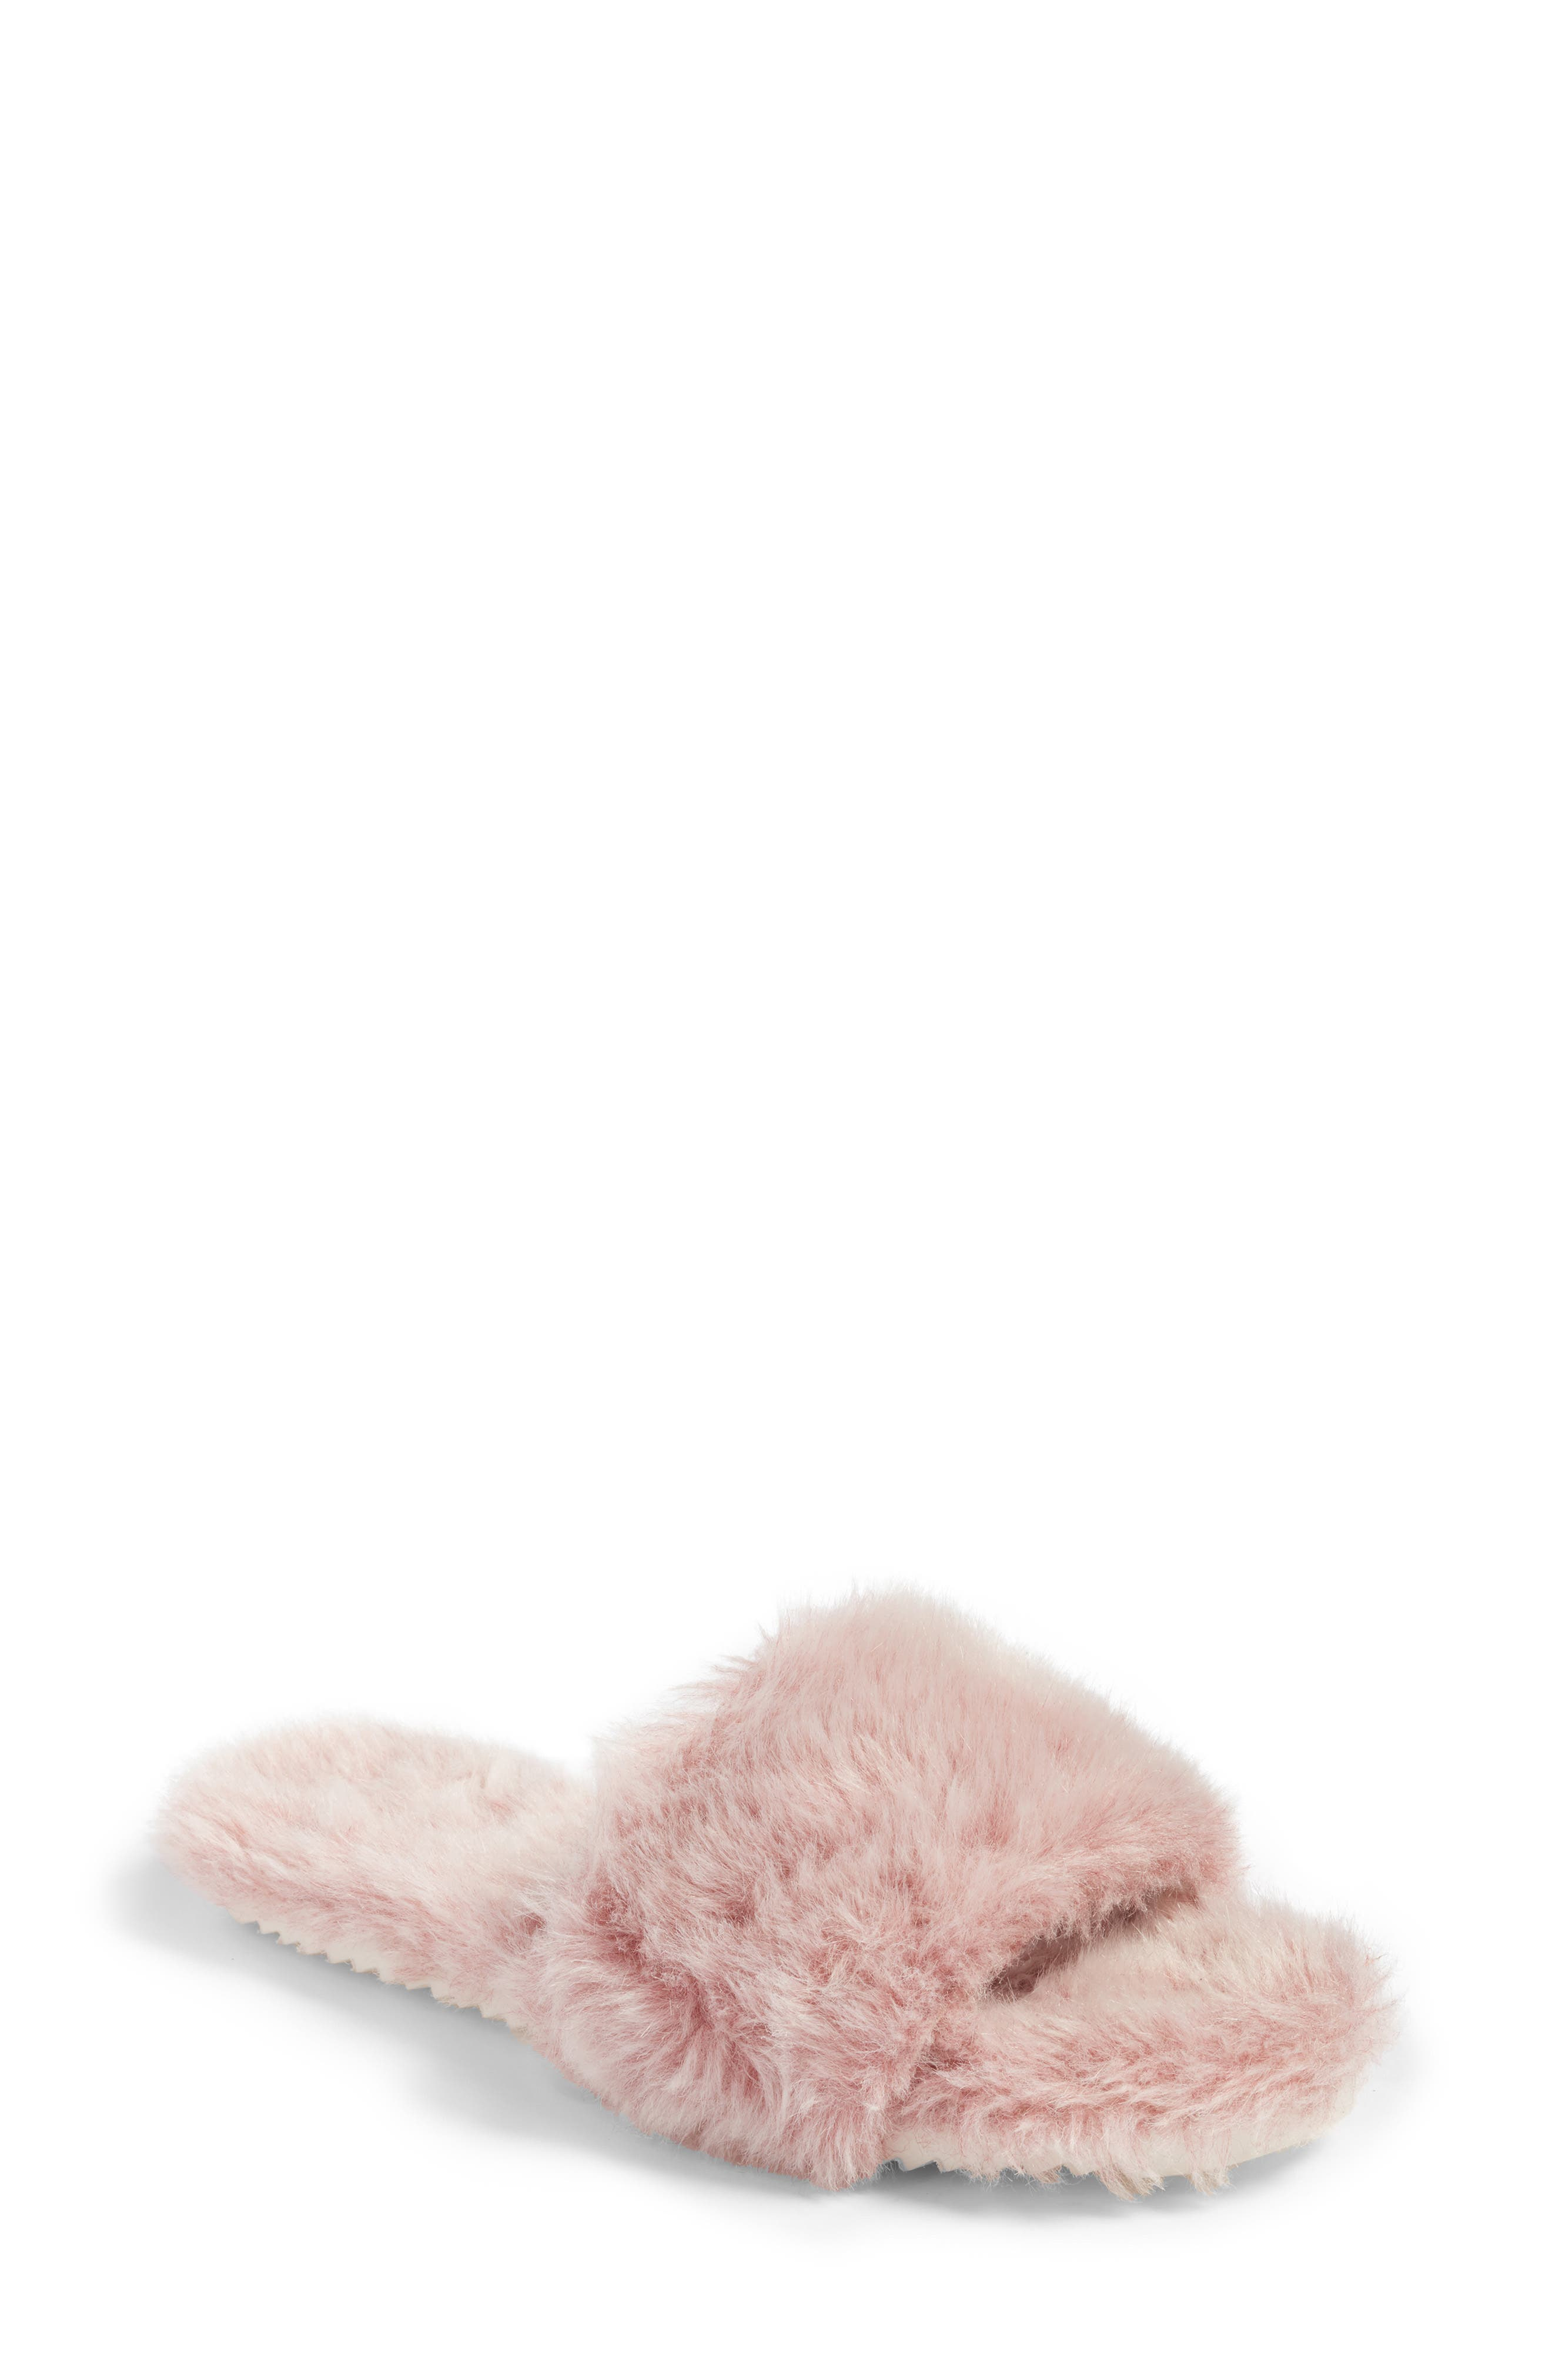 Alternate Image 1 Selected - Joshua Sanders Faux Fur Slide Sandal (Women)